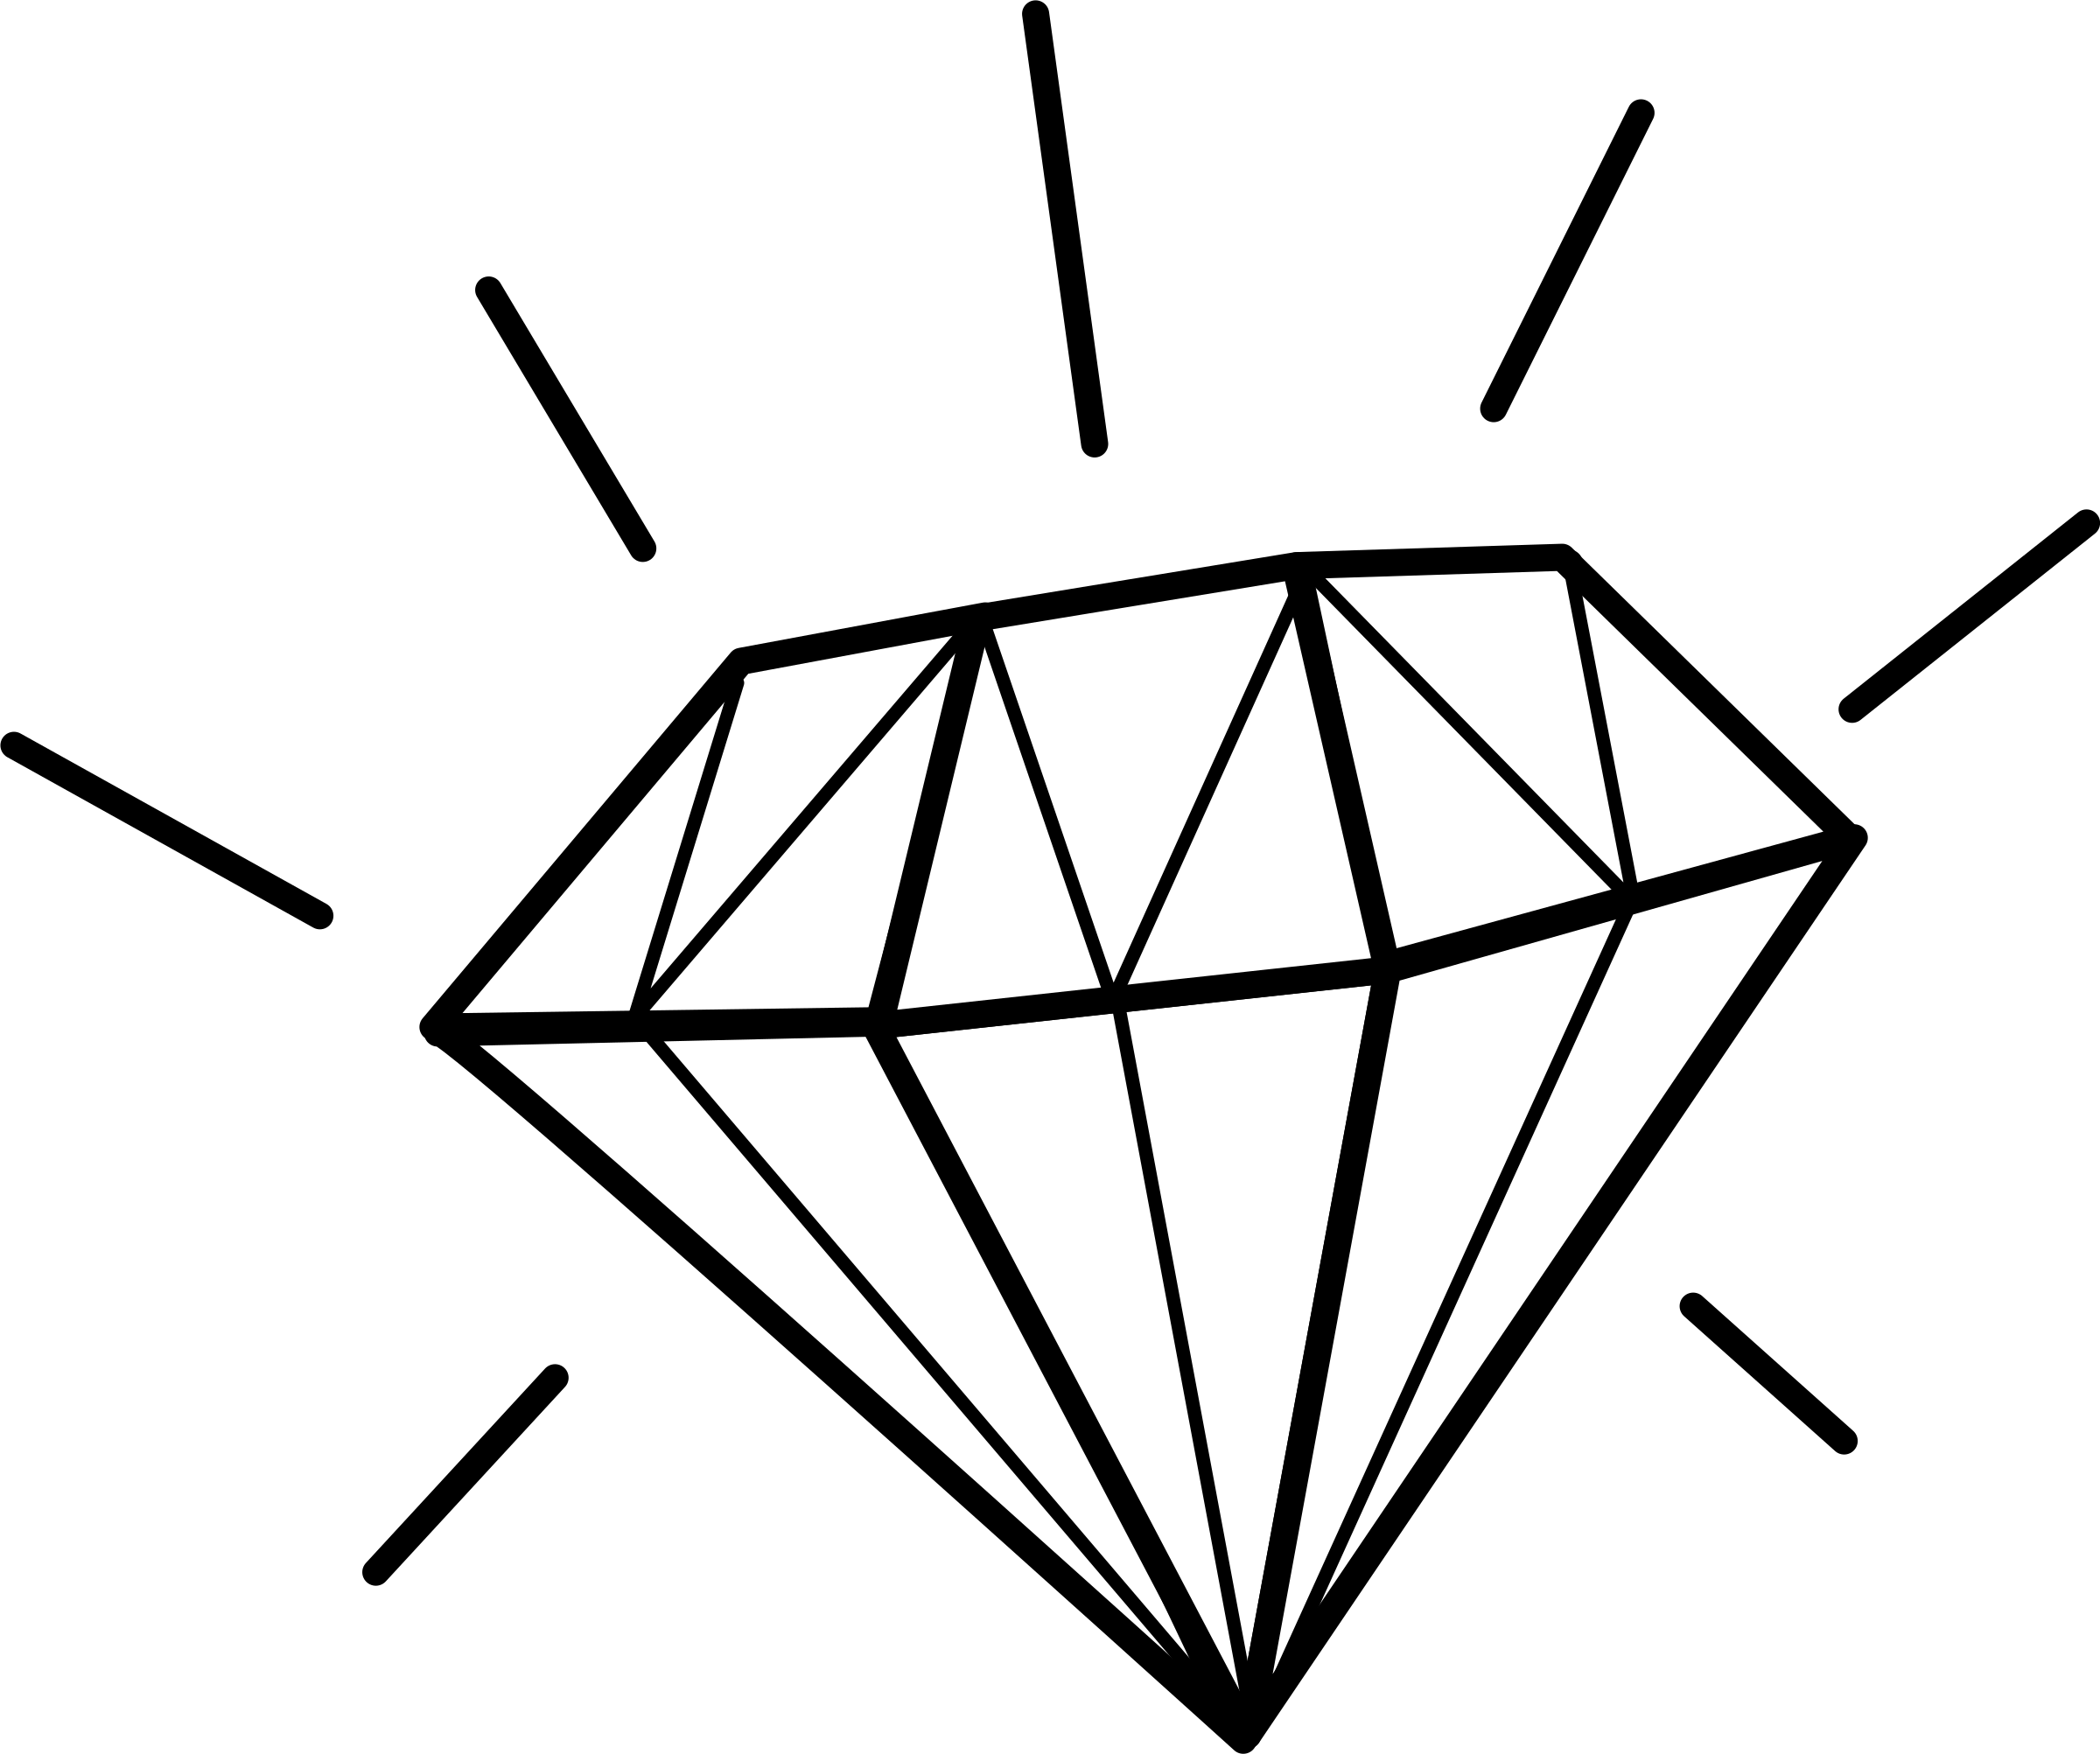 Diamant / diamond by lmproulx